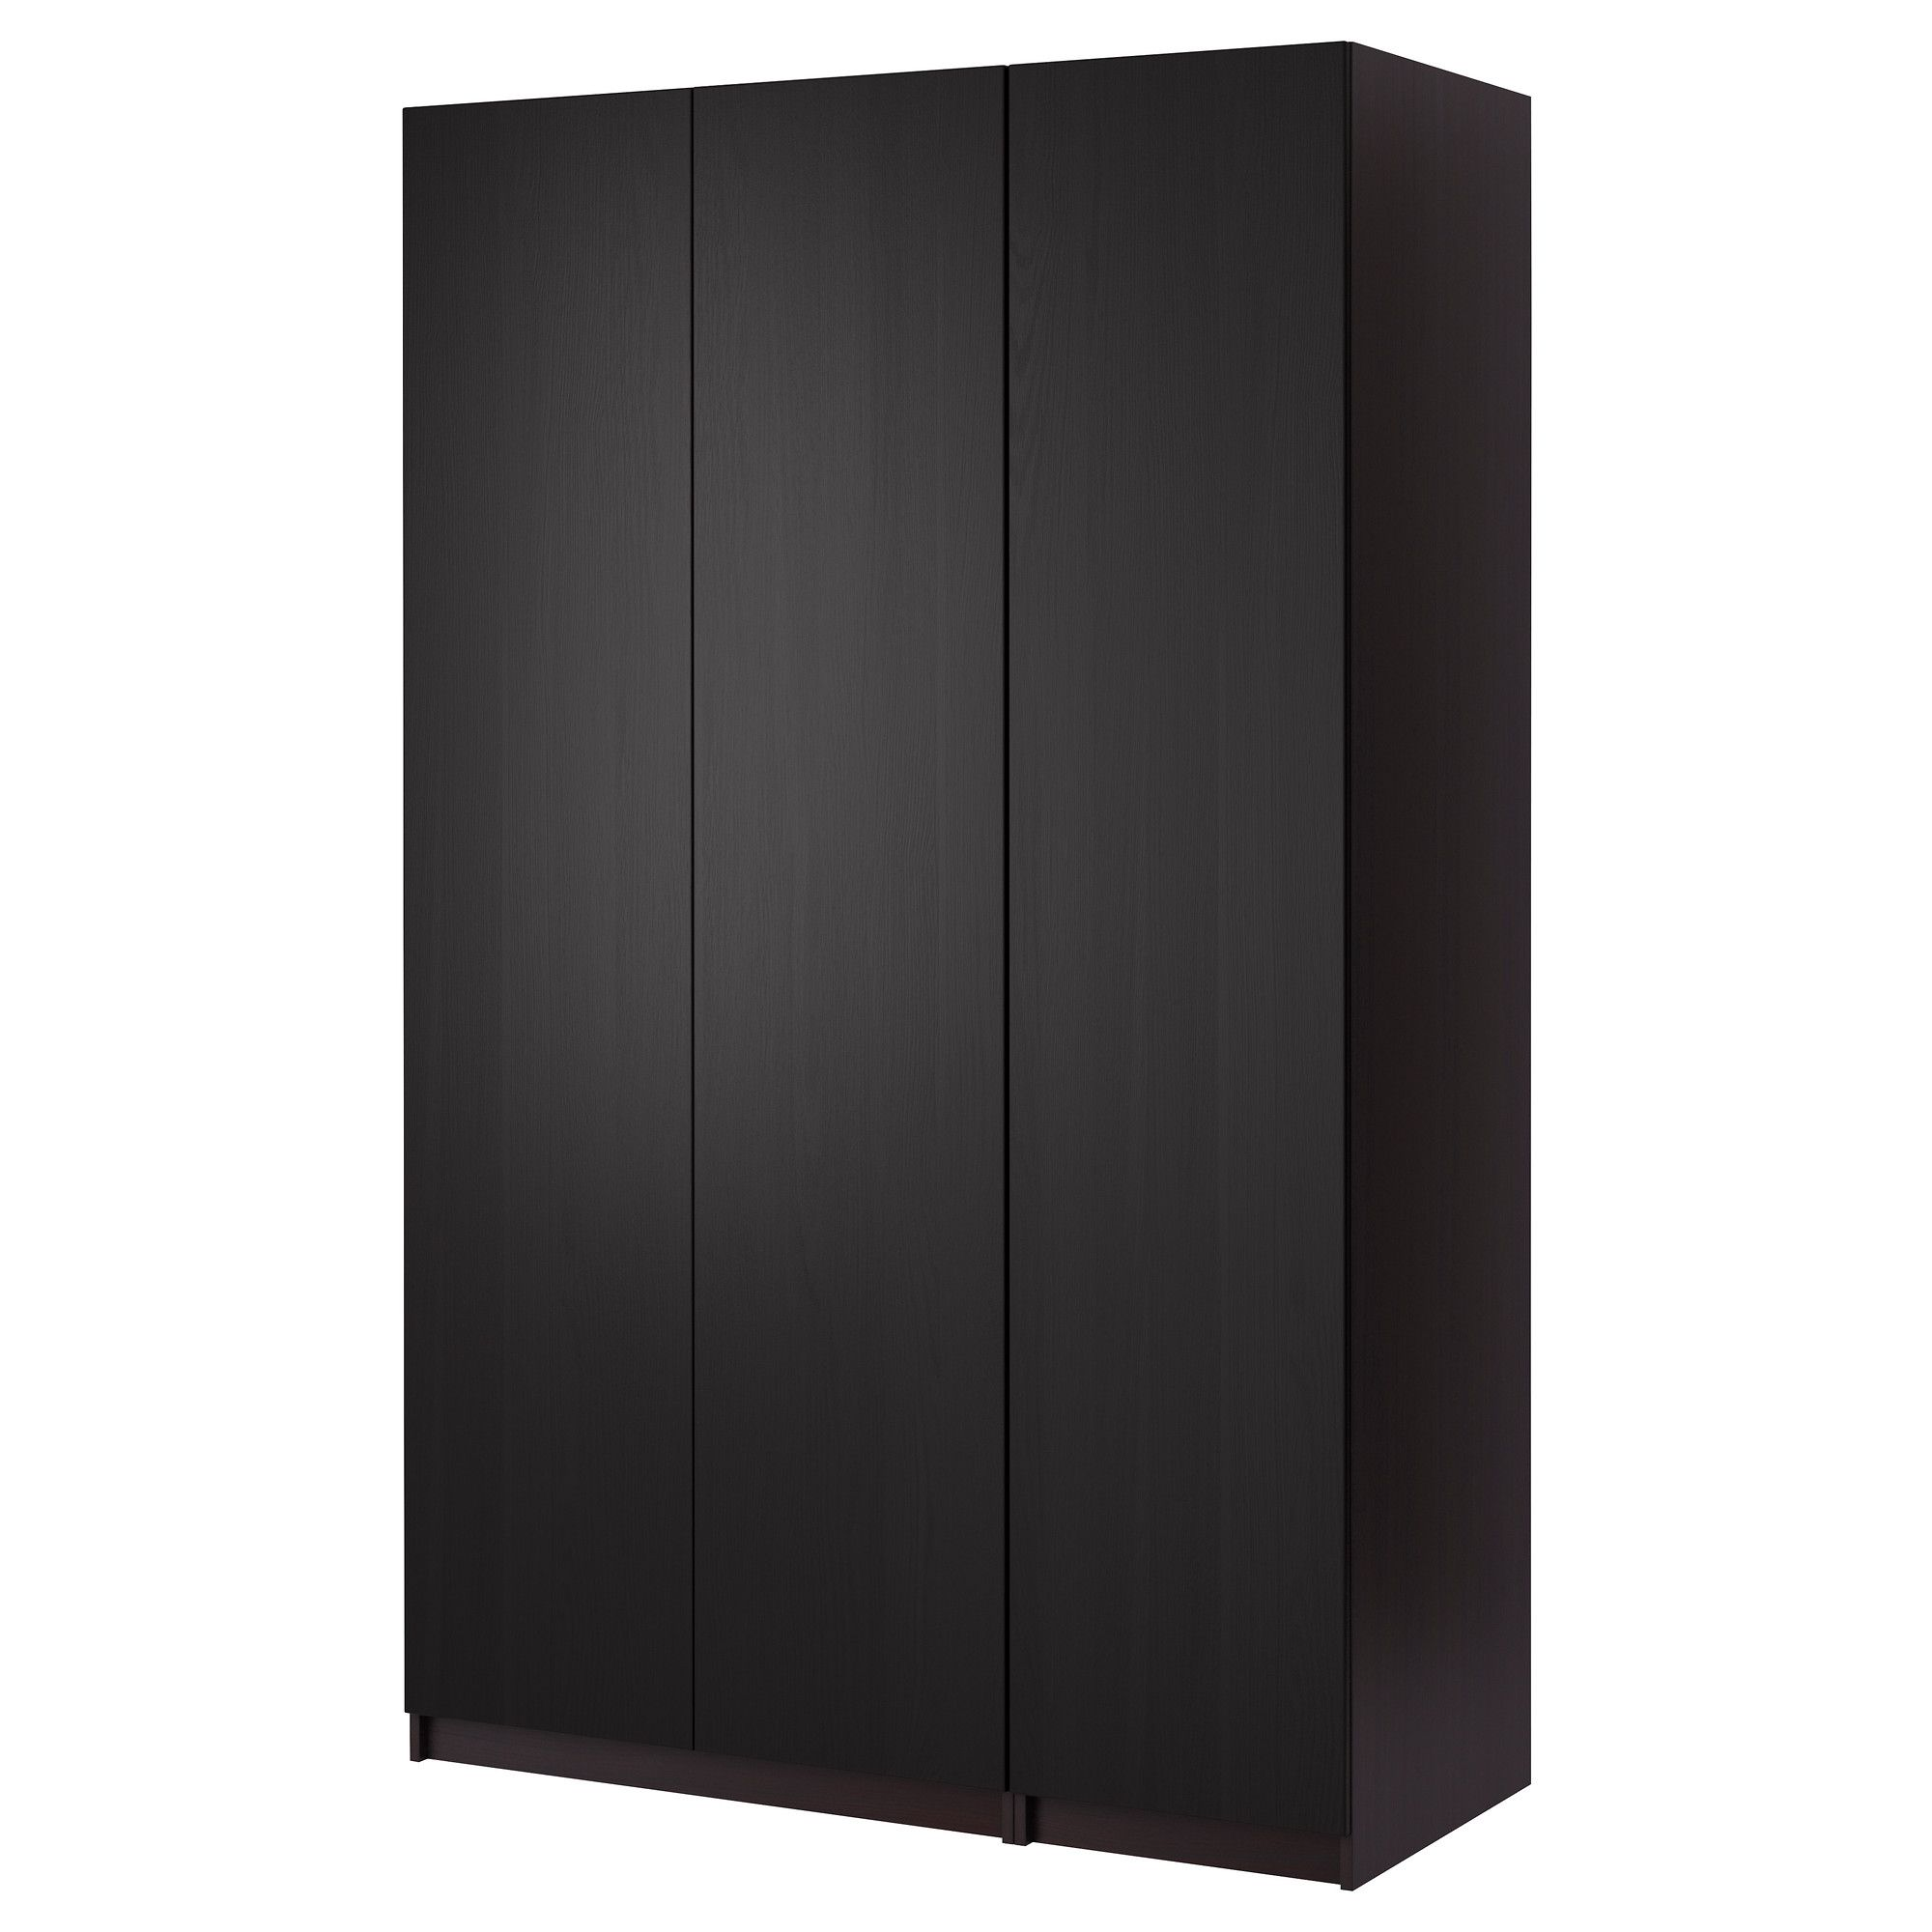 schwebet renschrank ikea fkh. Black Bedroom Furniture Sets. Home Design Ideas